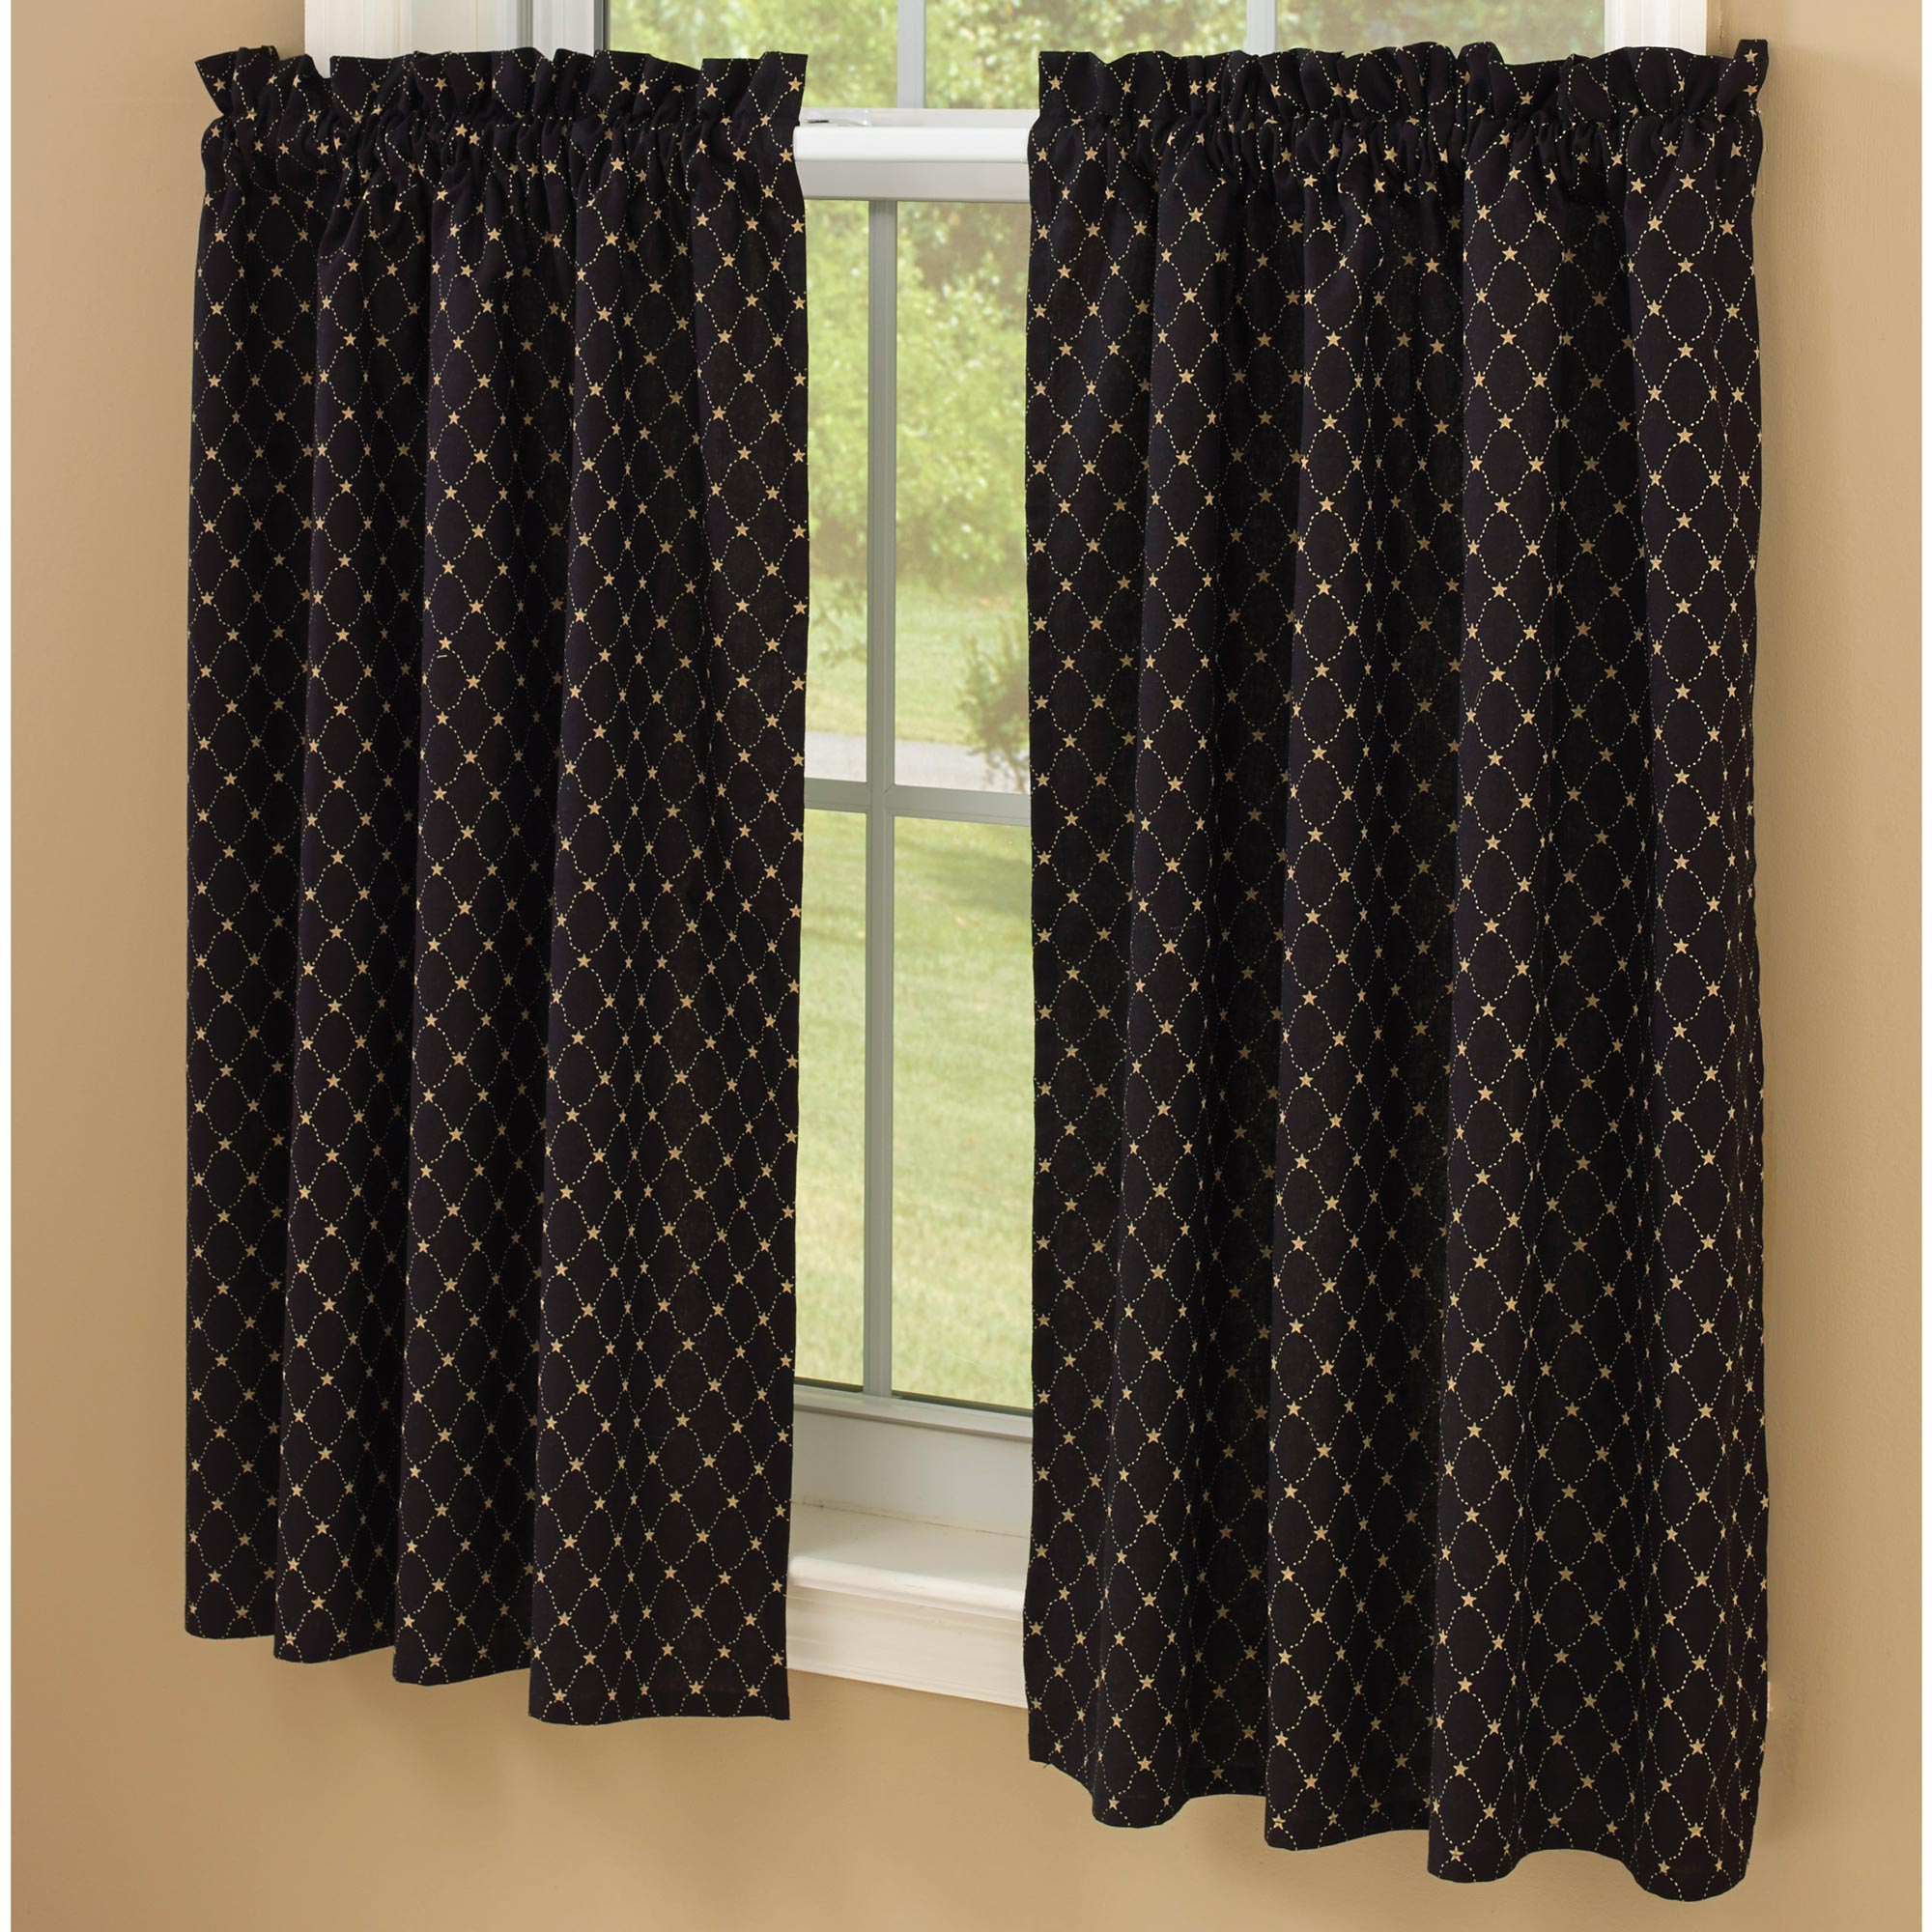 Black With Tan Stars Lined Curtain Tiers By Park Designs